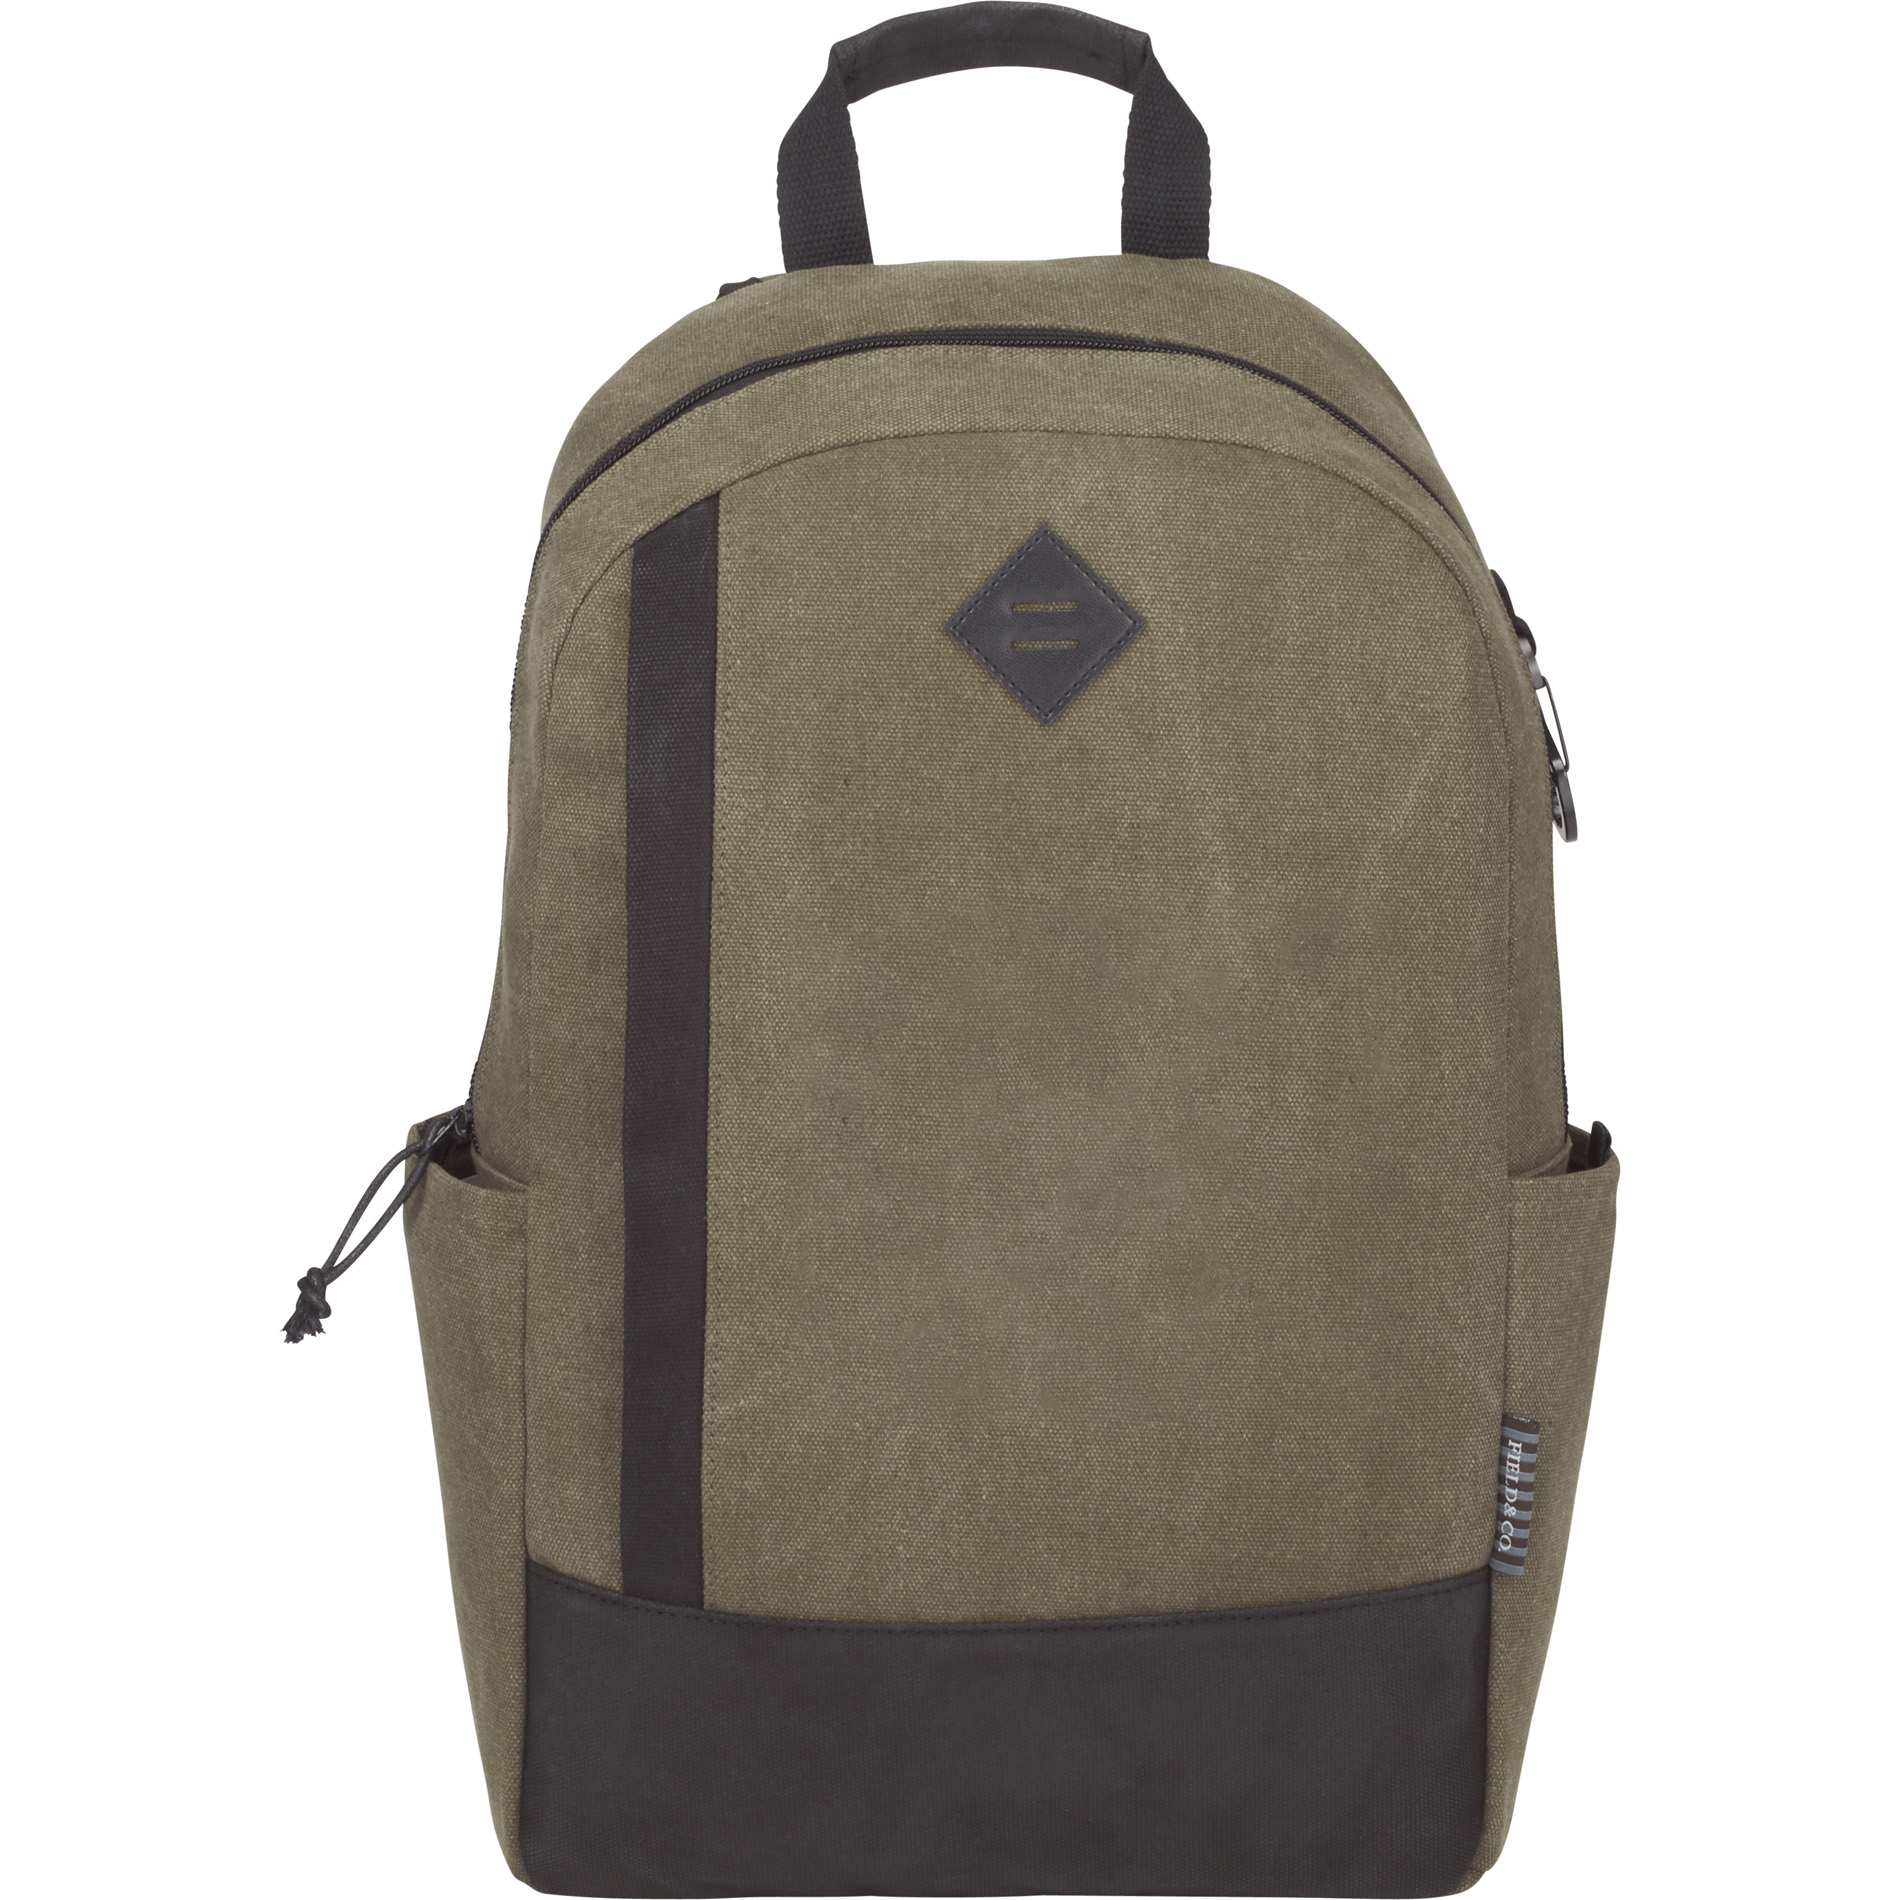 "Field & Co. 7950-37 - Woodland 15"" Computer Backpack"